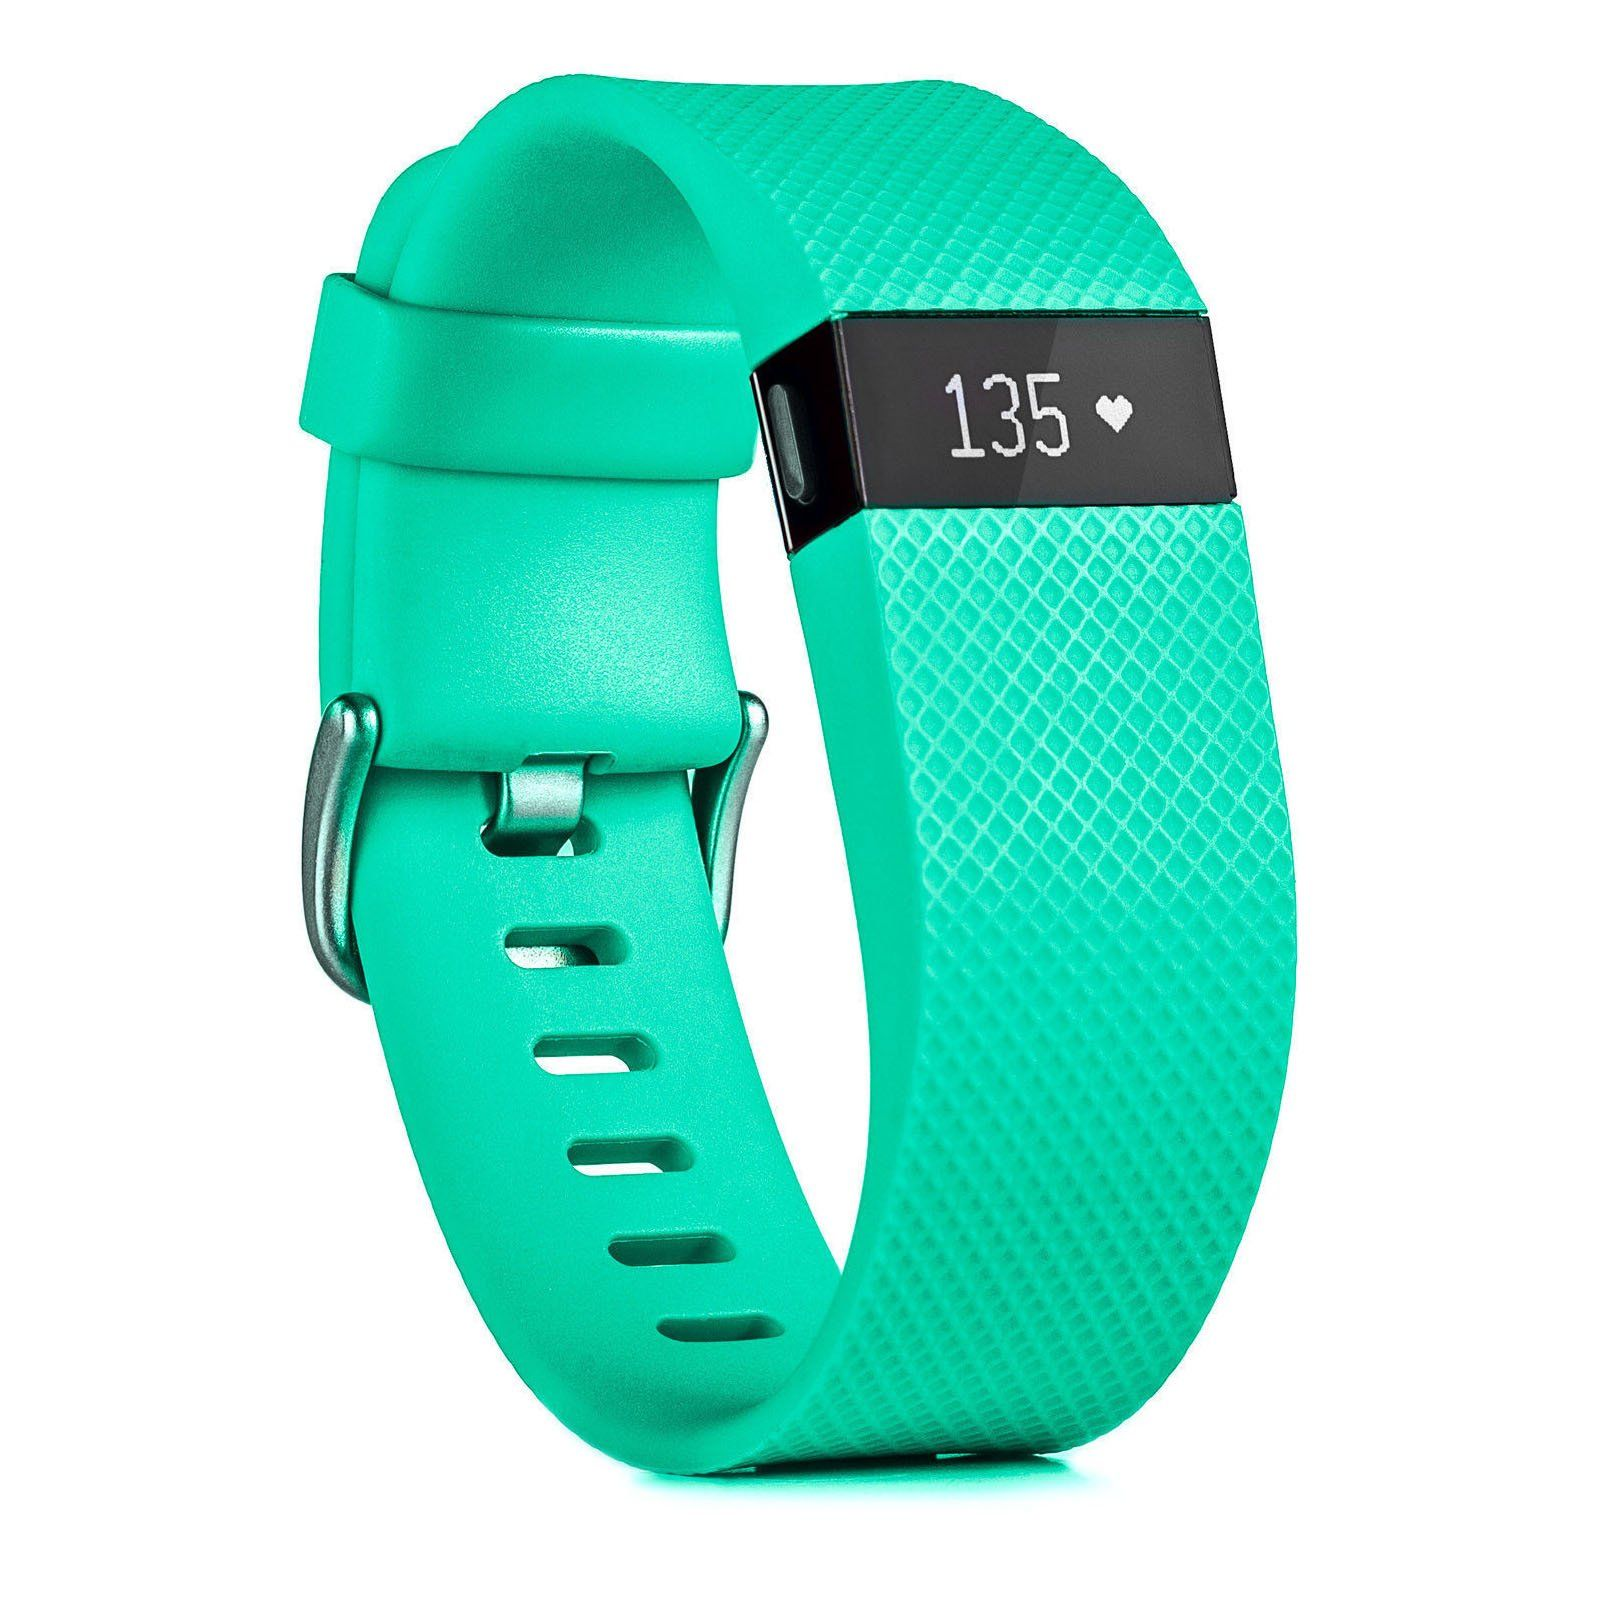 Teal Fitbit Charge HR Activity, Heart Rate + Sleep Wristband